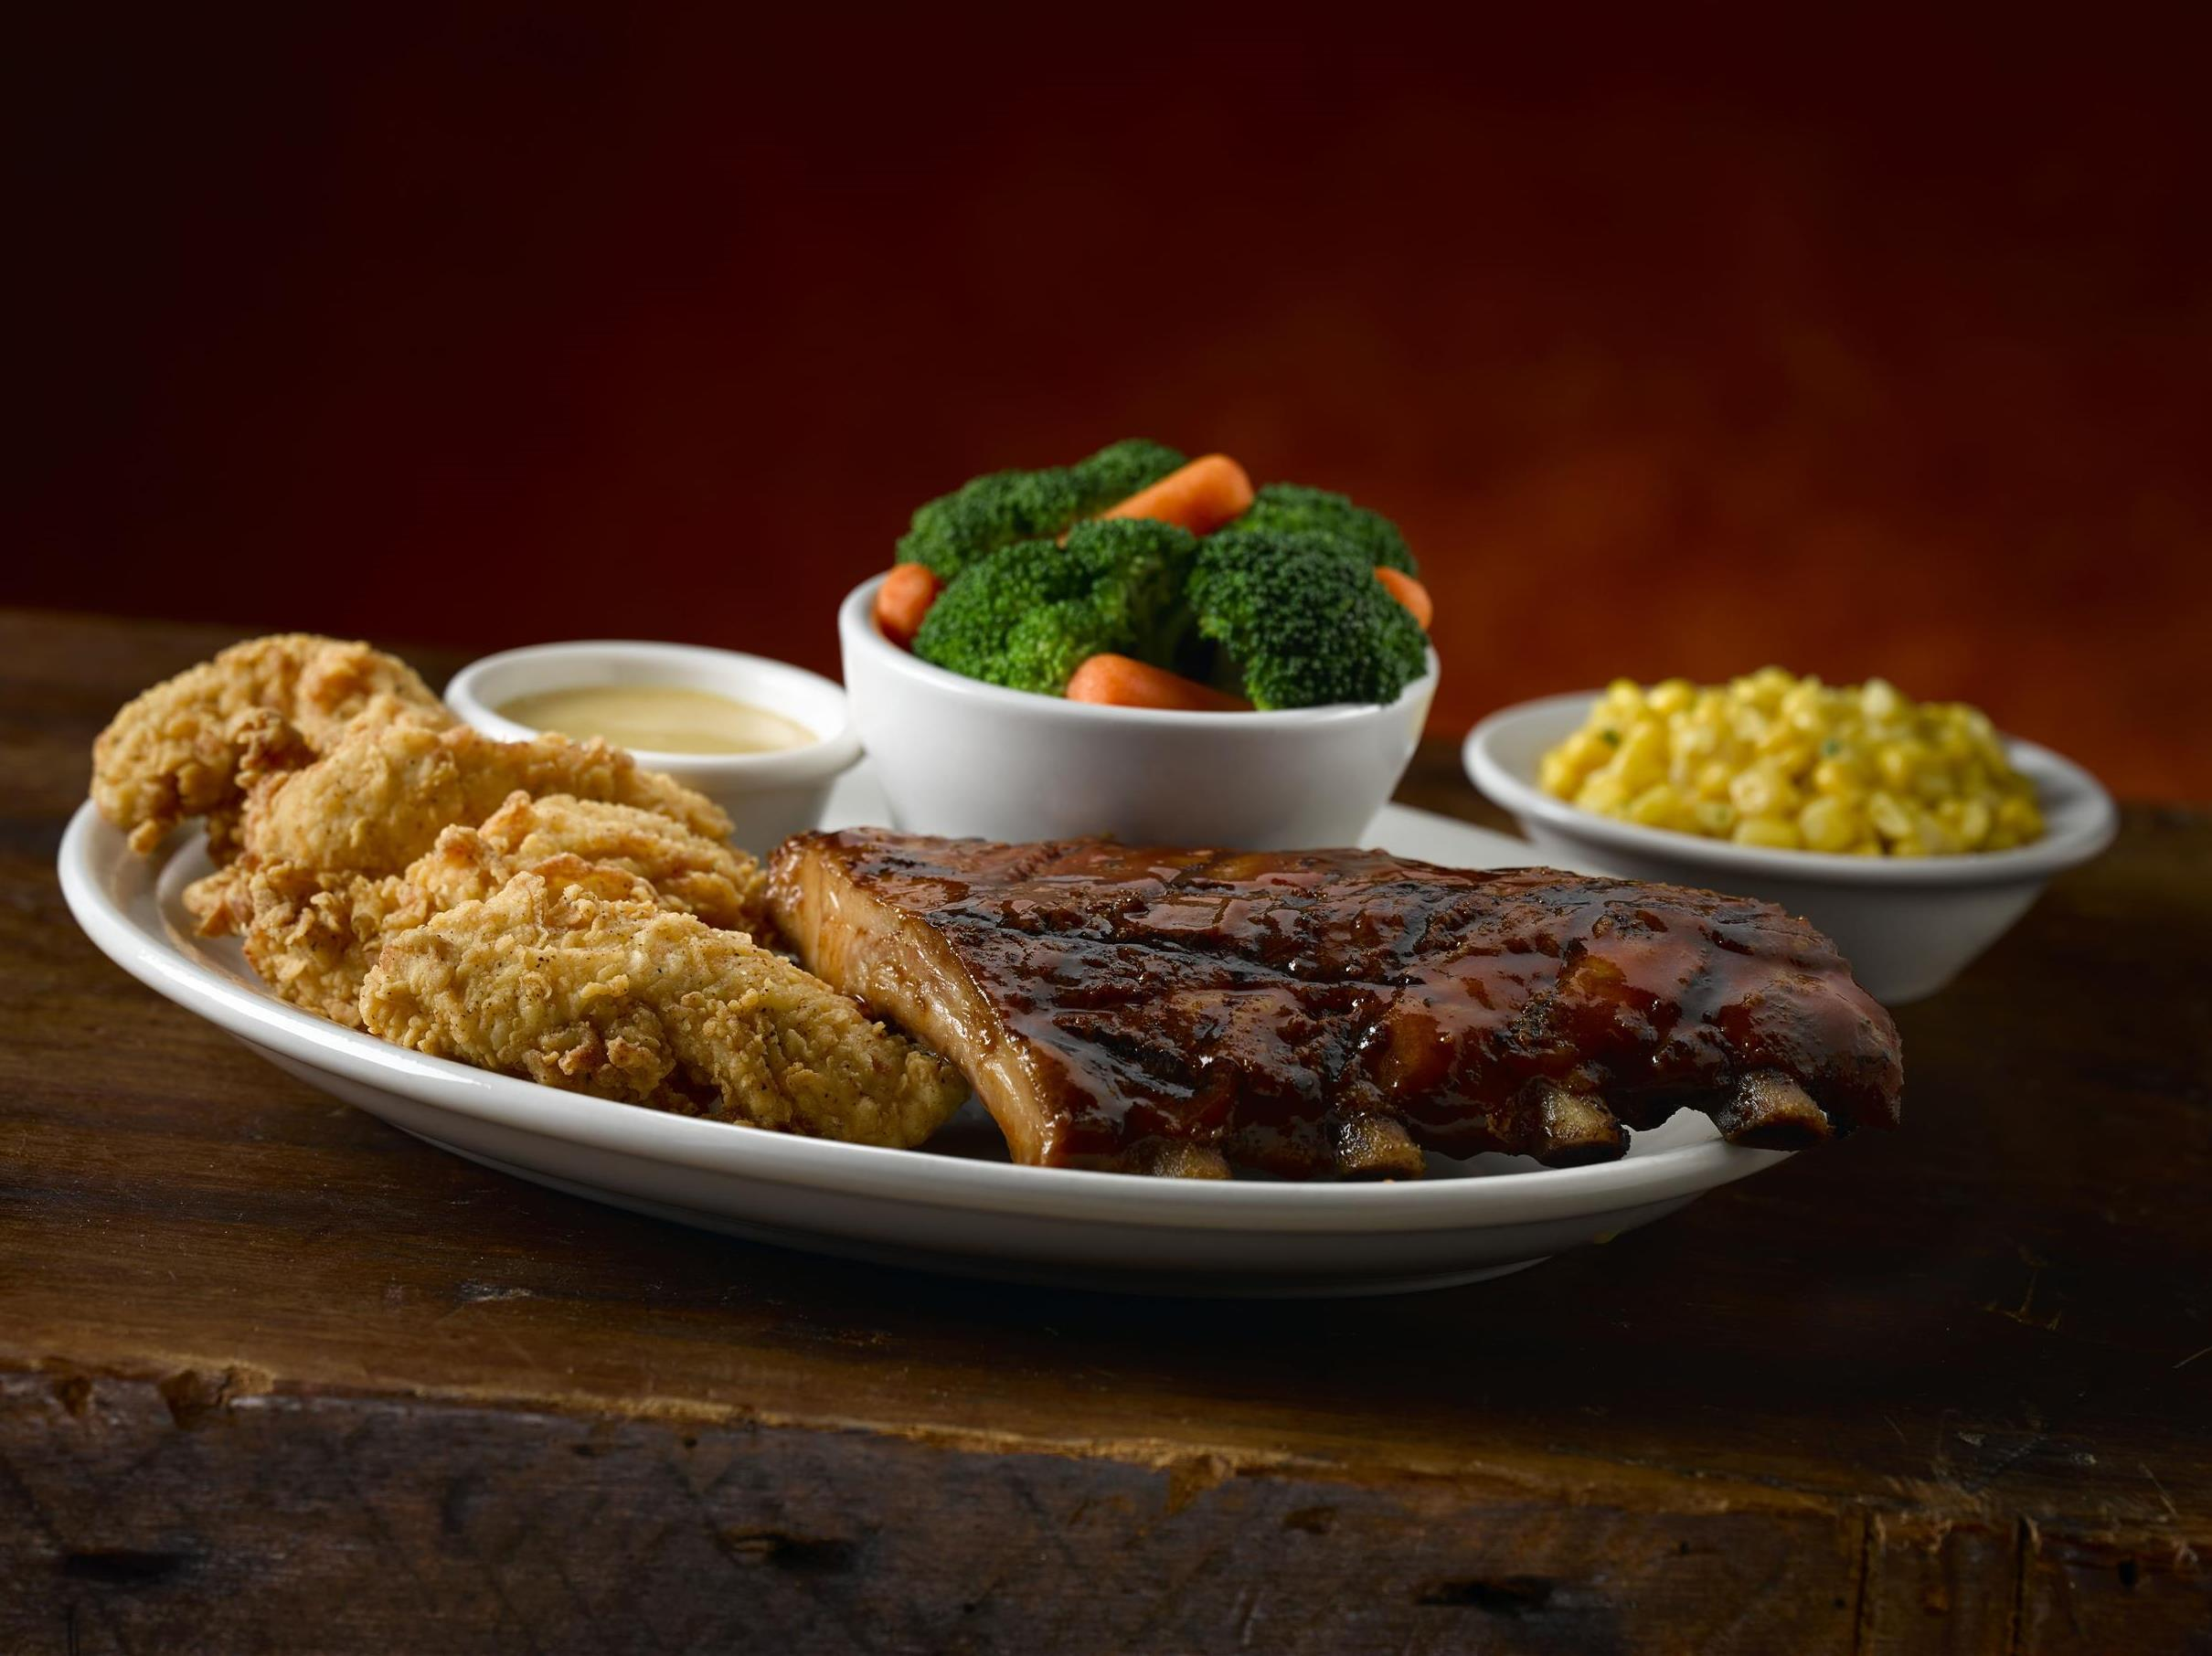 Texas Roadhouse S Epic Decade Of Foot Traffic Growth Came To An End In Q1 2020 The Motley Fool